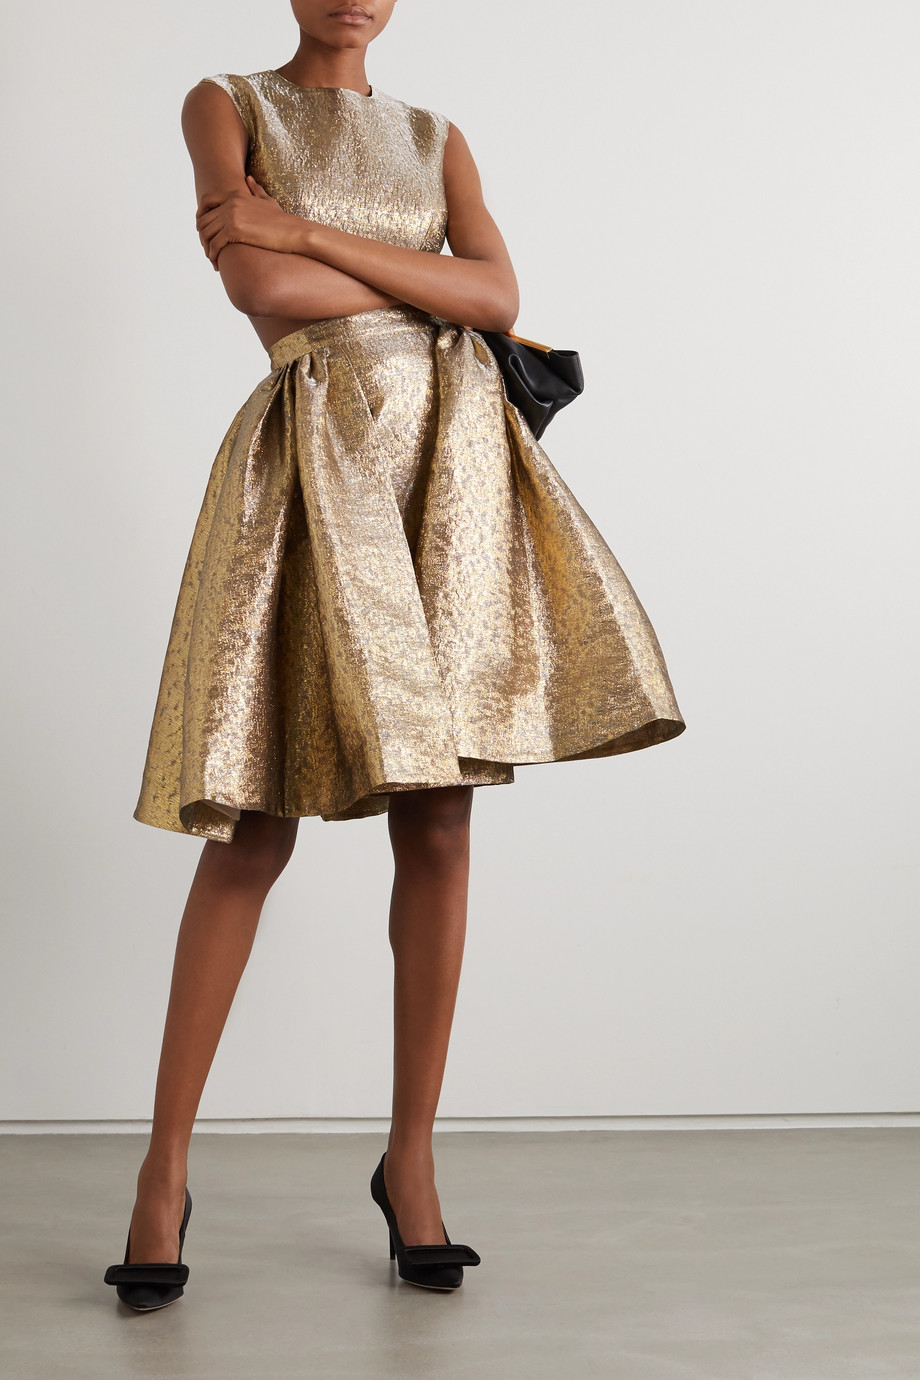 Emilia Wickstead Pleated lamé skirt